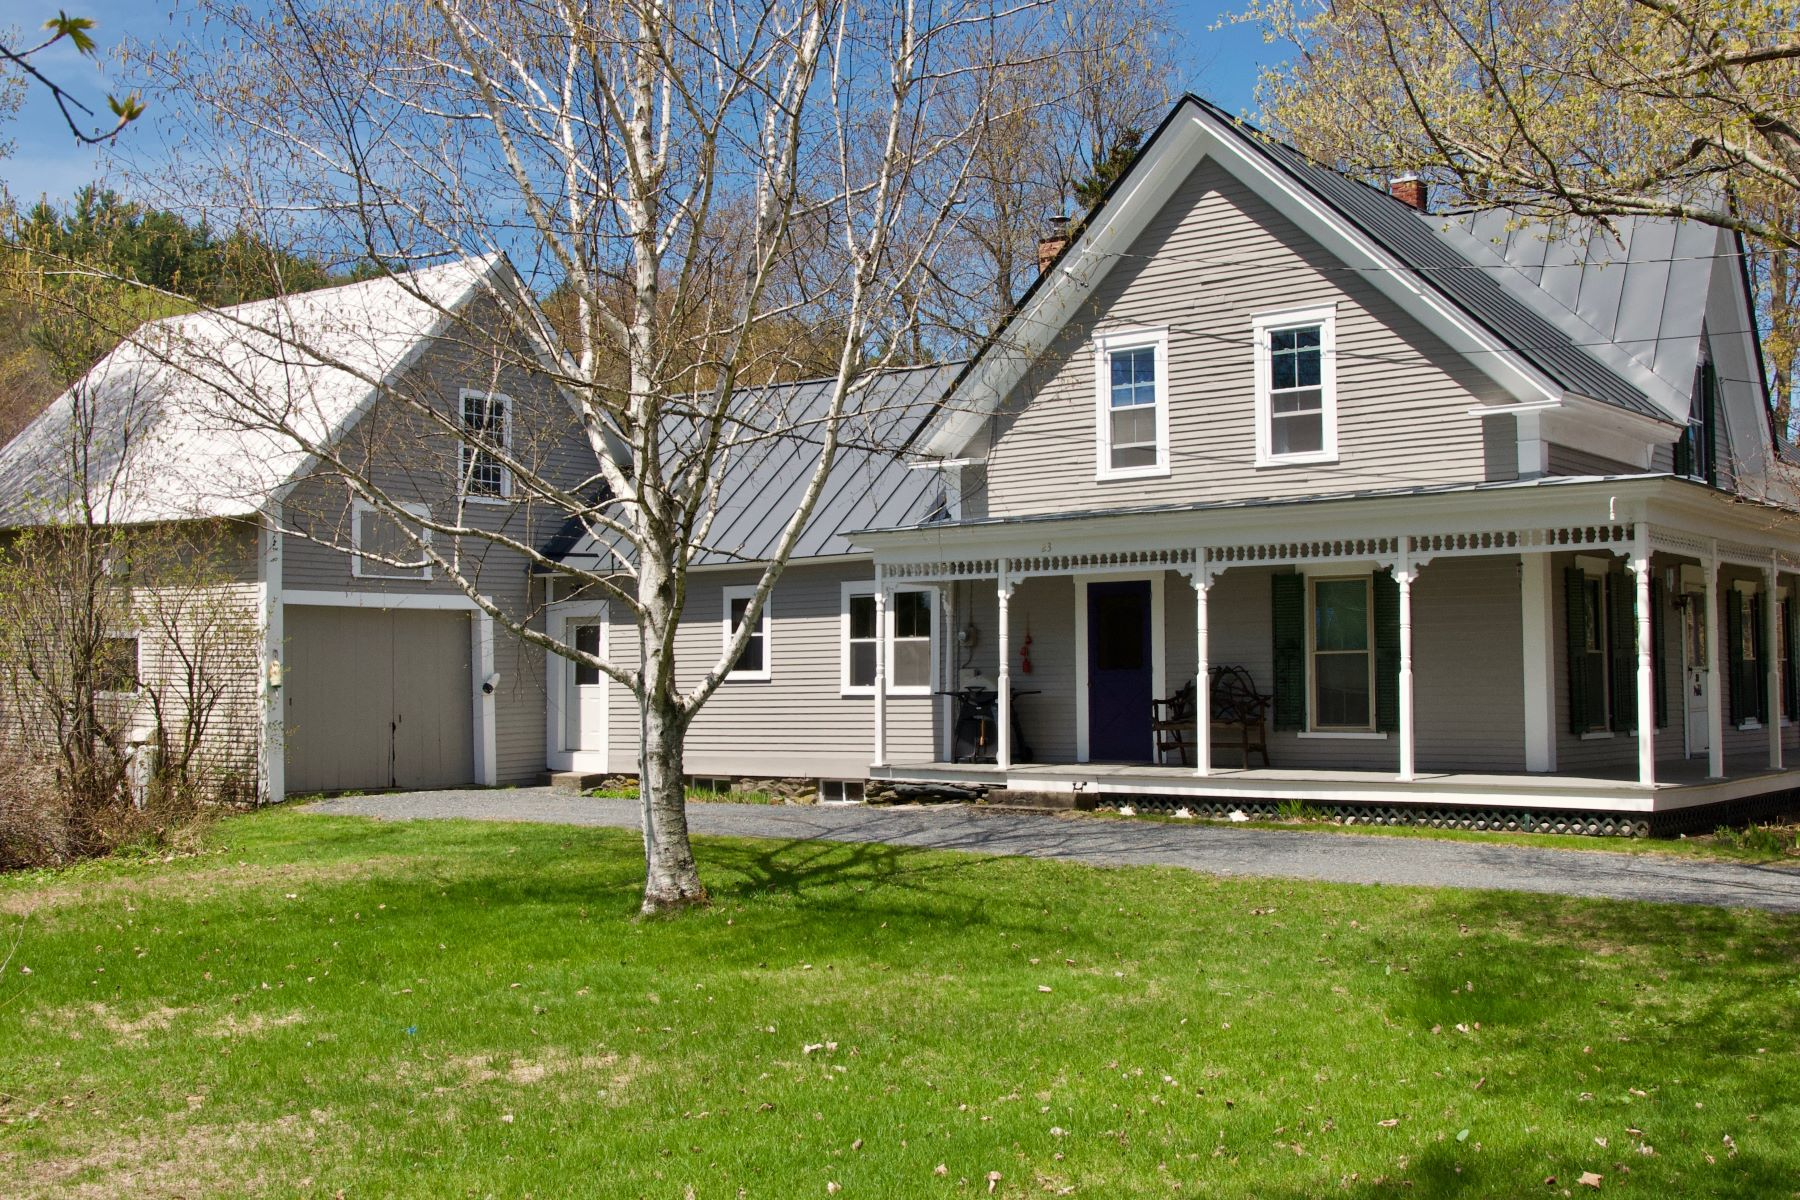 Single Family Home for Sale at 23 Cornish Stage Road, Cornish 23 Cornish Stage Rd Cornish, New Hampshire 03745 United States